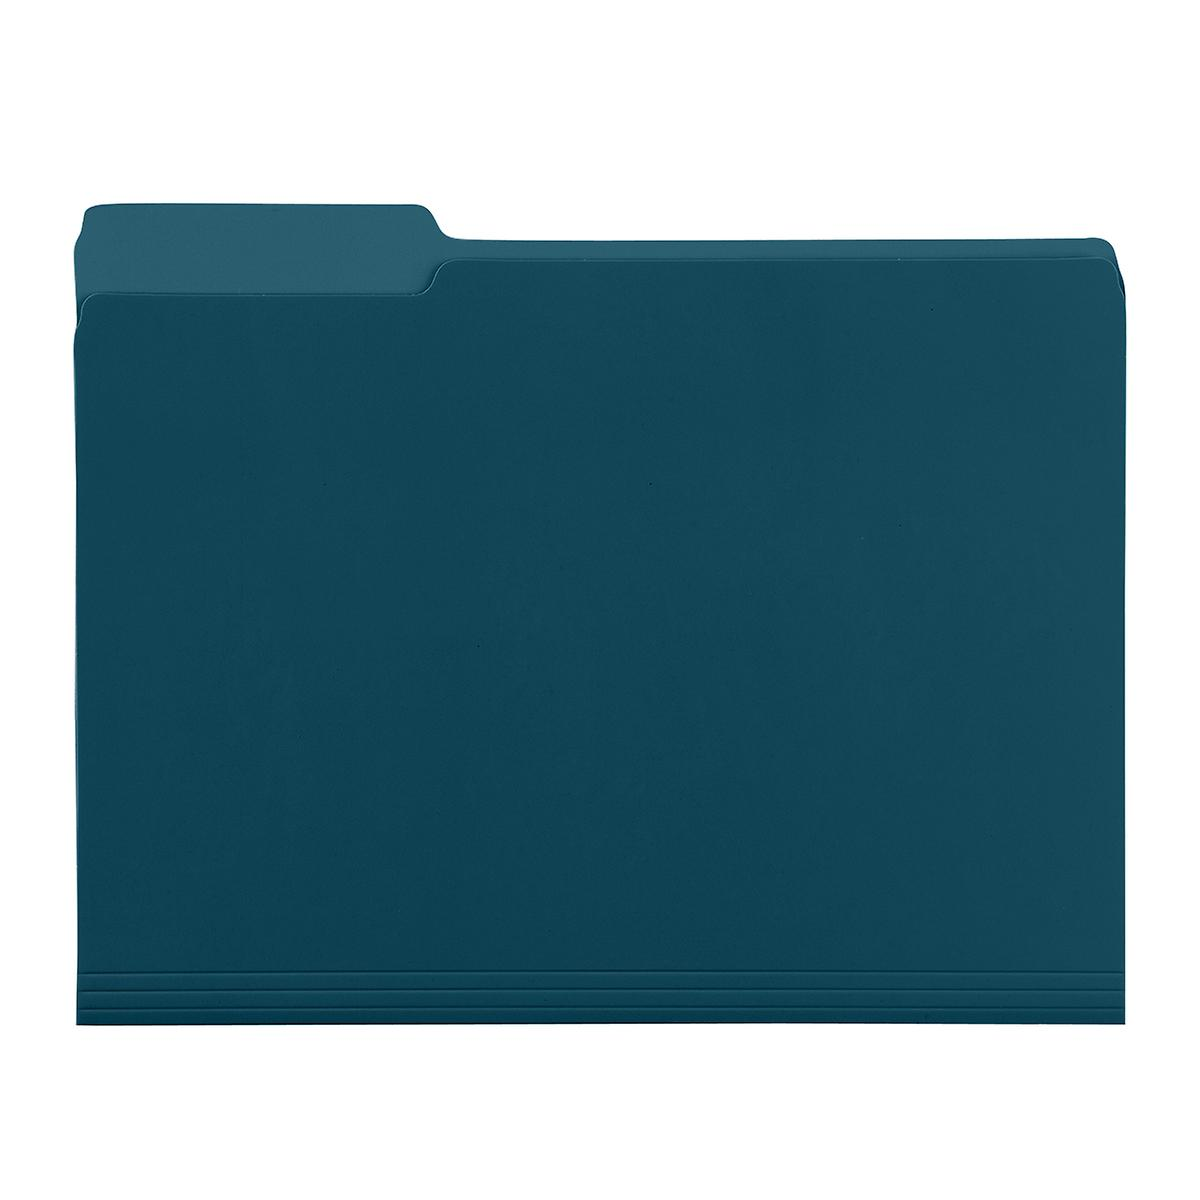 Teal Letter-Size Interior File Folders